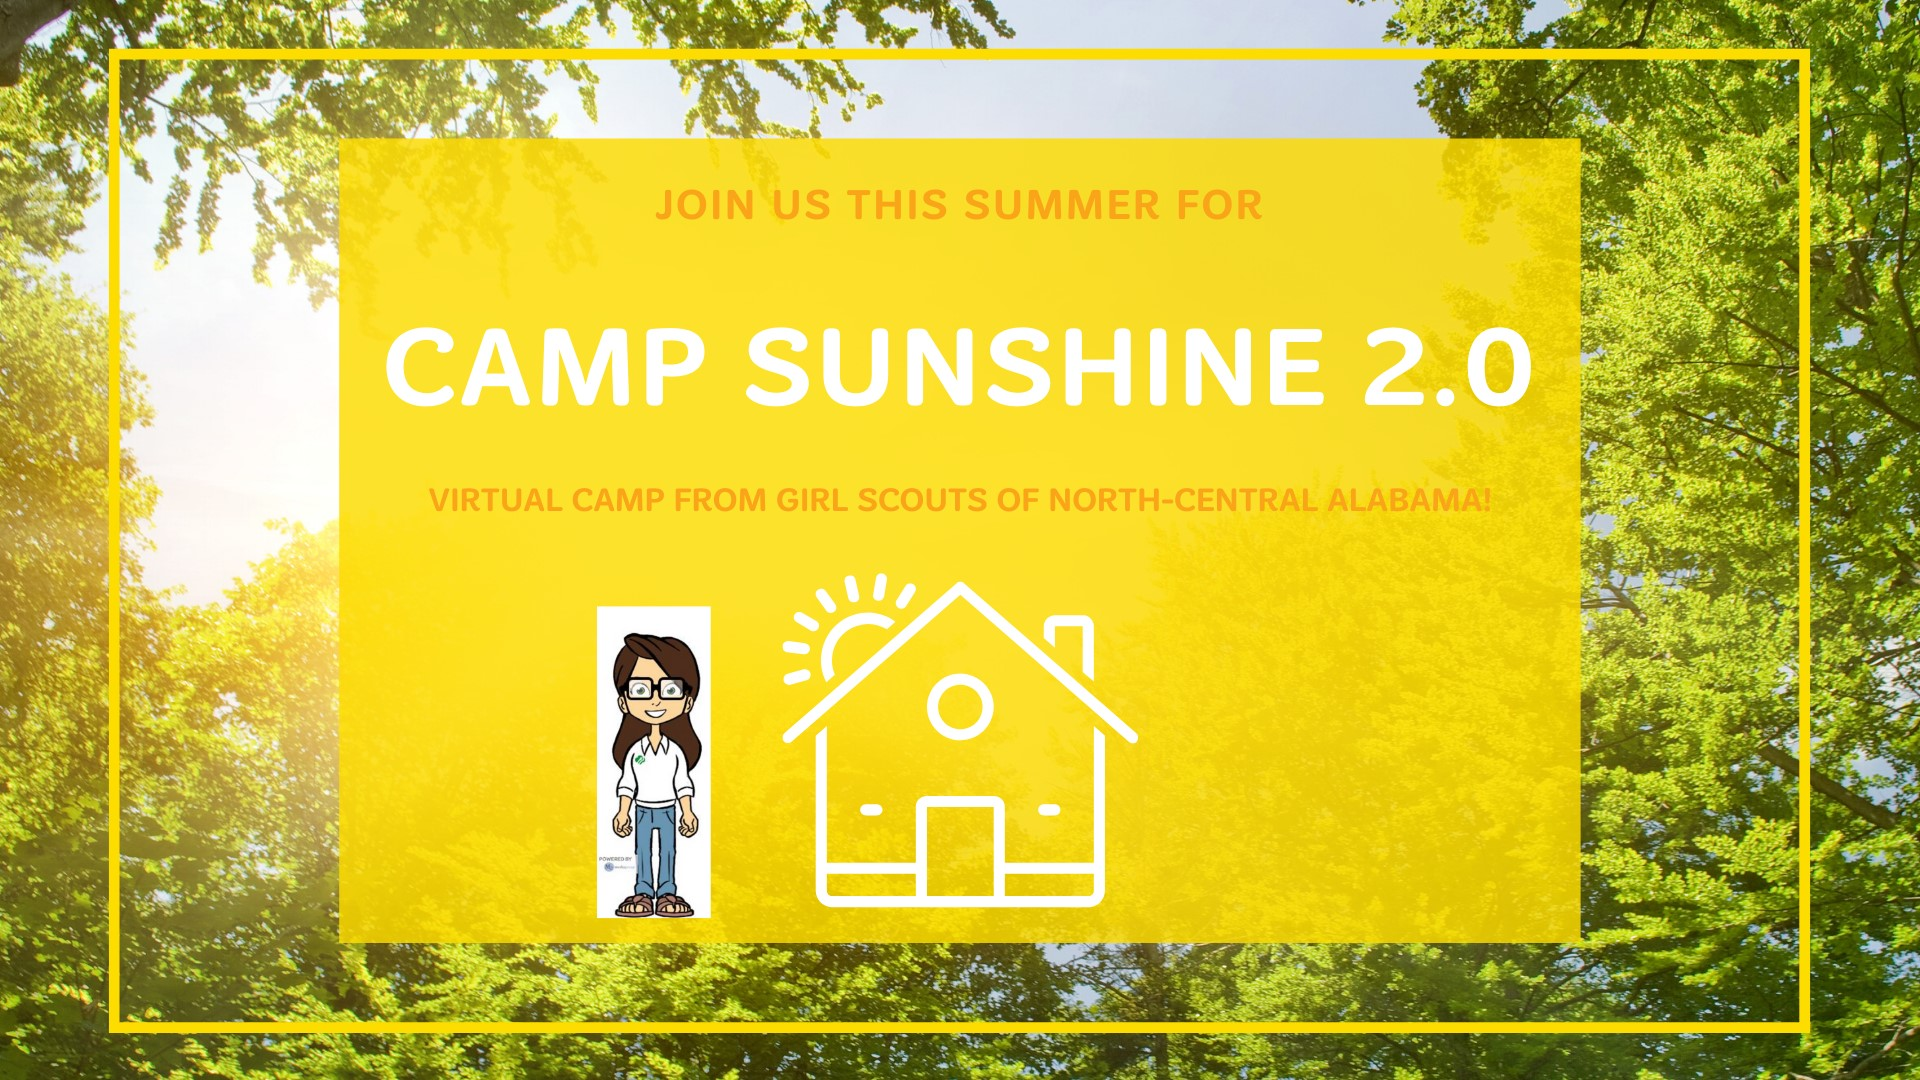 Girl Scouts to offer Virtual Camp to girls across Alabama